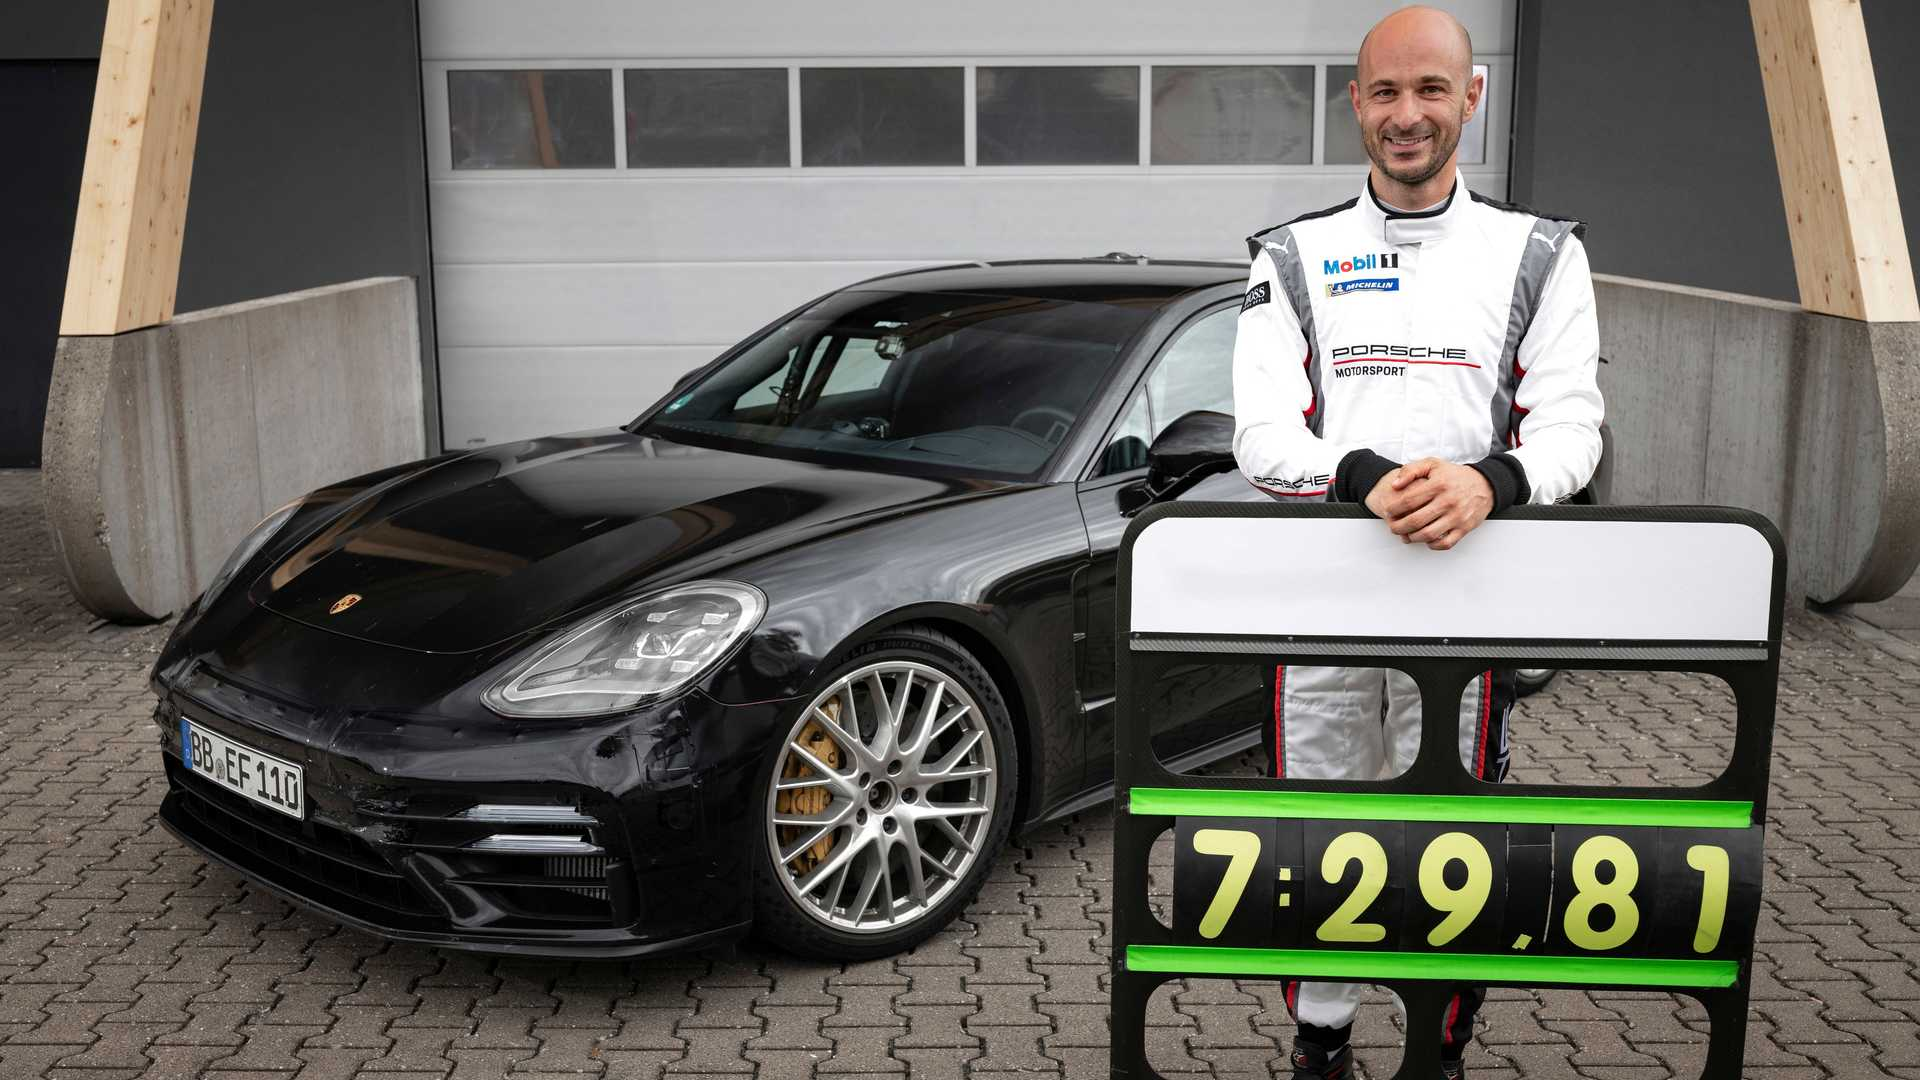 2021-porsche-panamera-sets-fastest-four-door-porsche-record-at-the-nurburgring-7